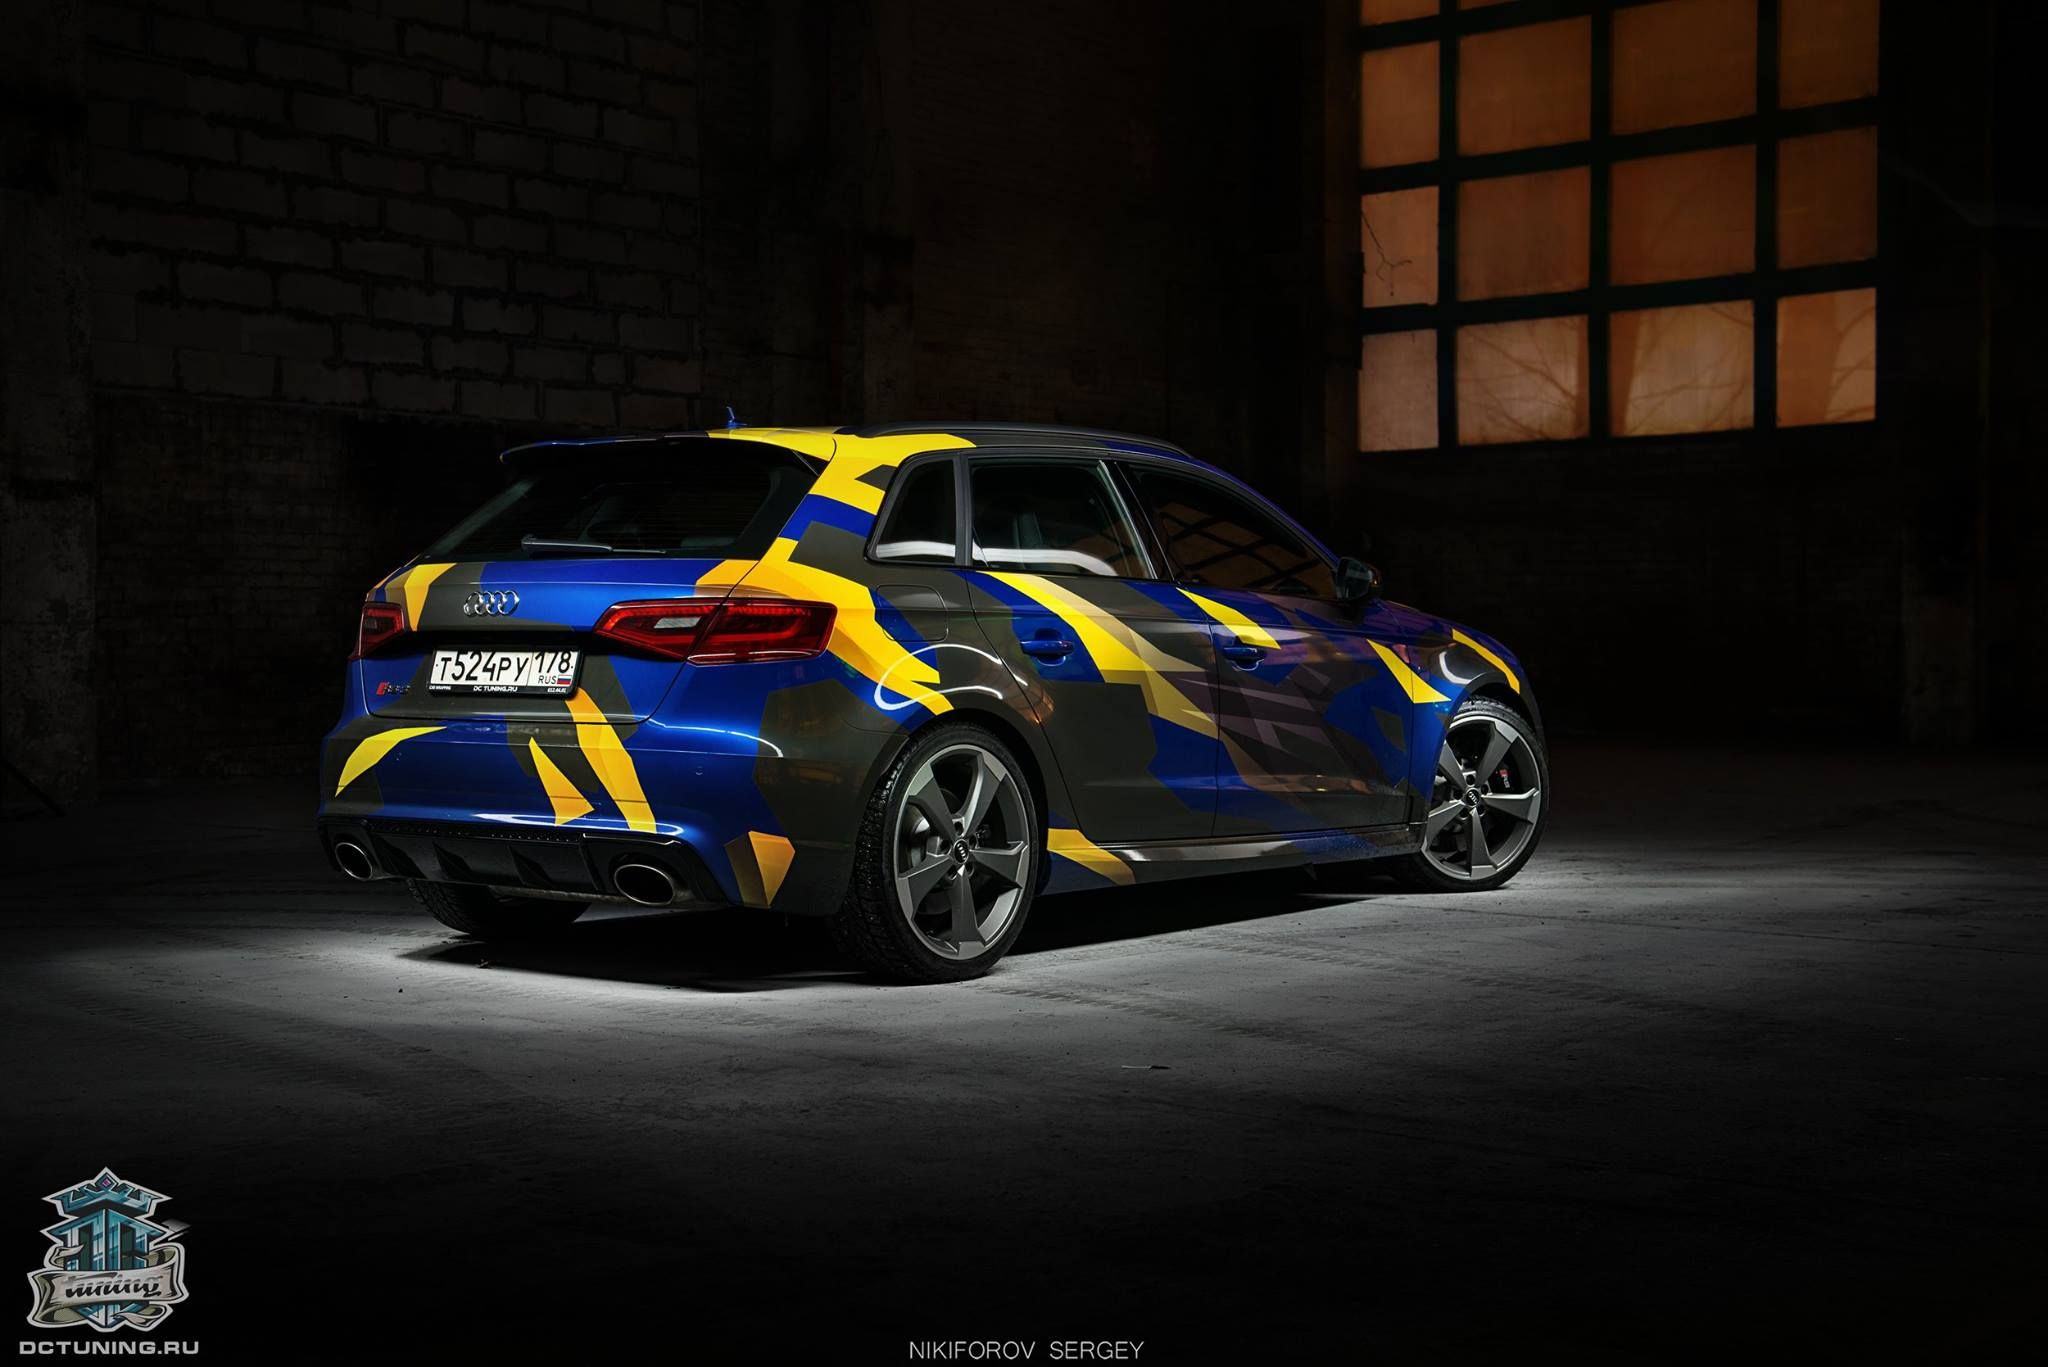 Car sticker design pinterest - Audi Rs3 Camouflage Design By Dc Tuning Cars Decalcar